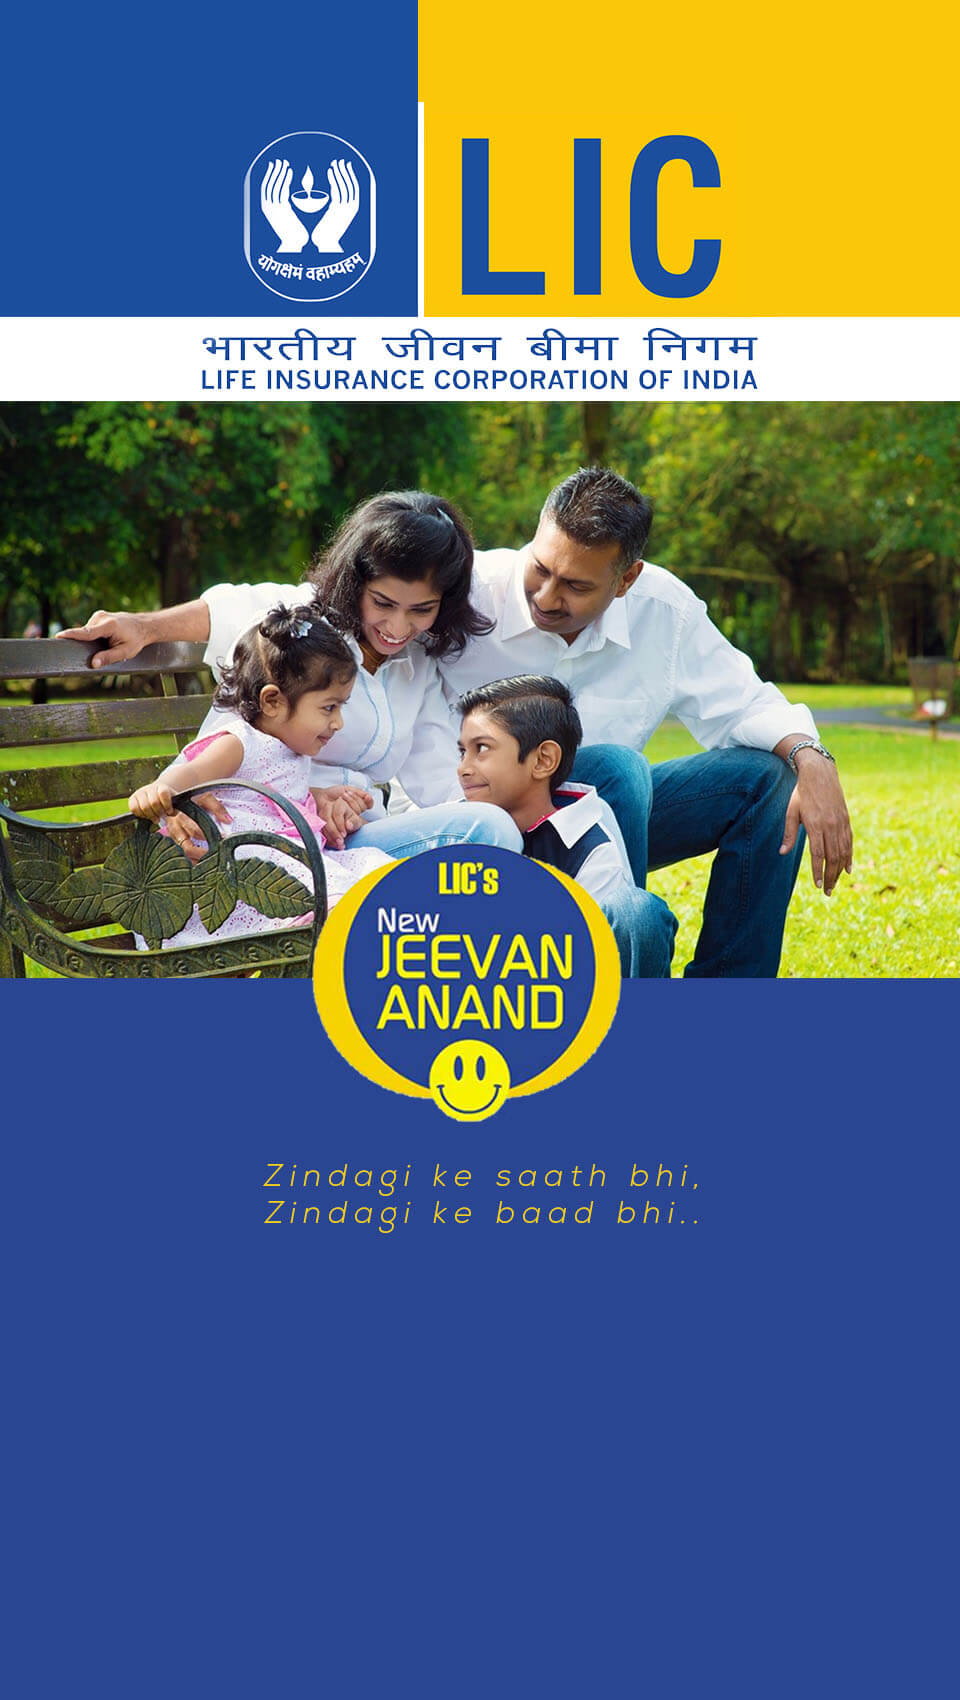 lic jeevan anand - cms - buzztm - lic jeevan anand